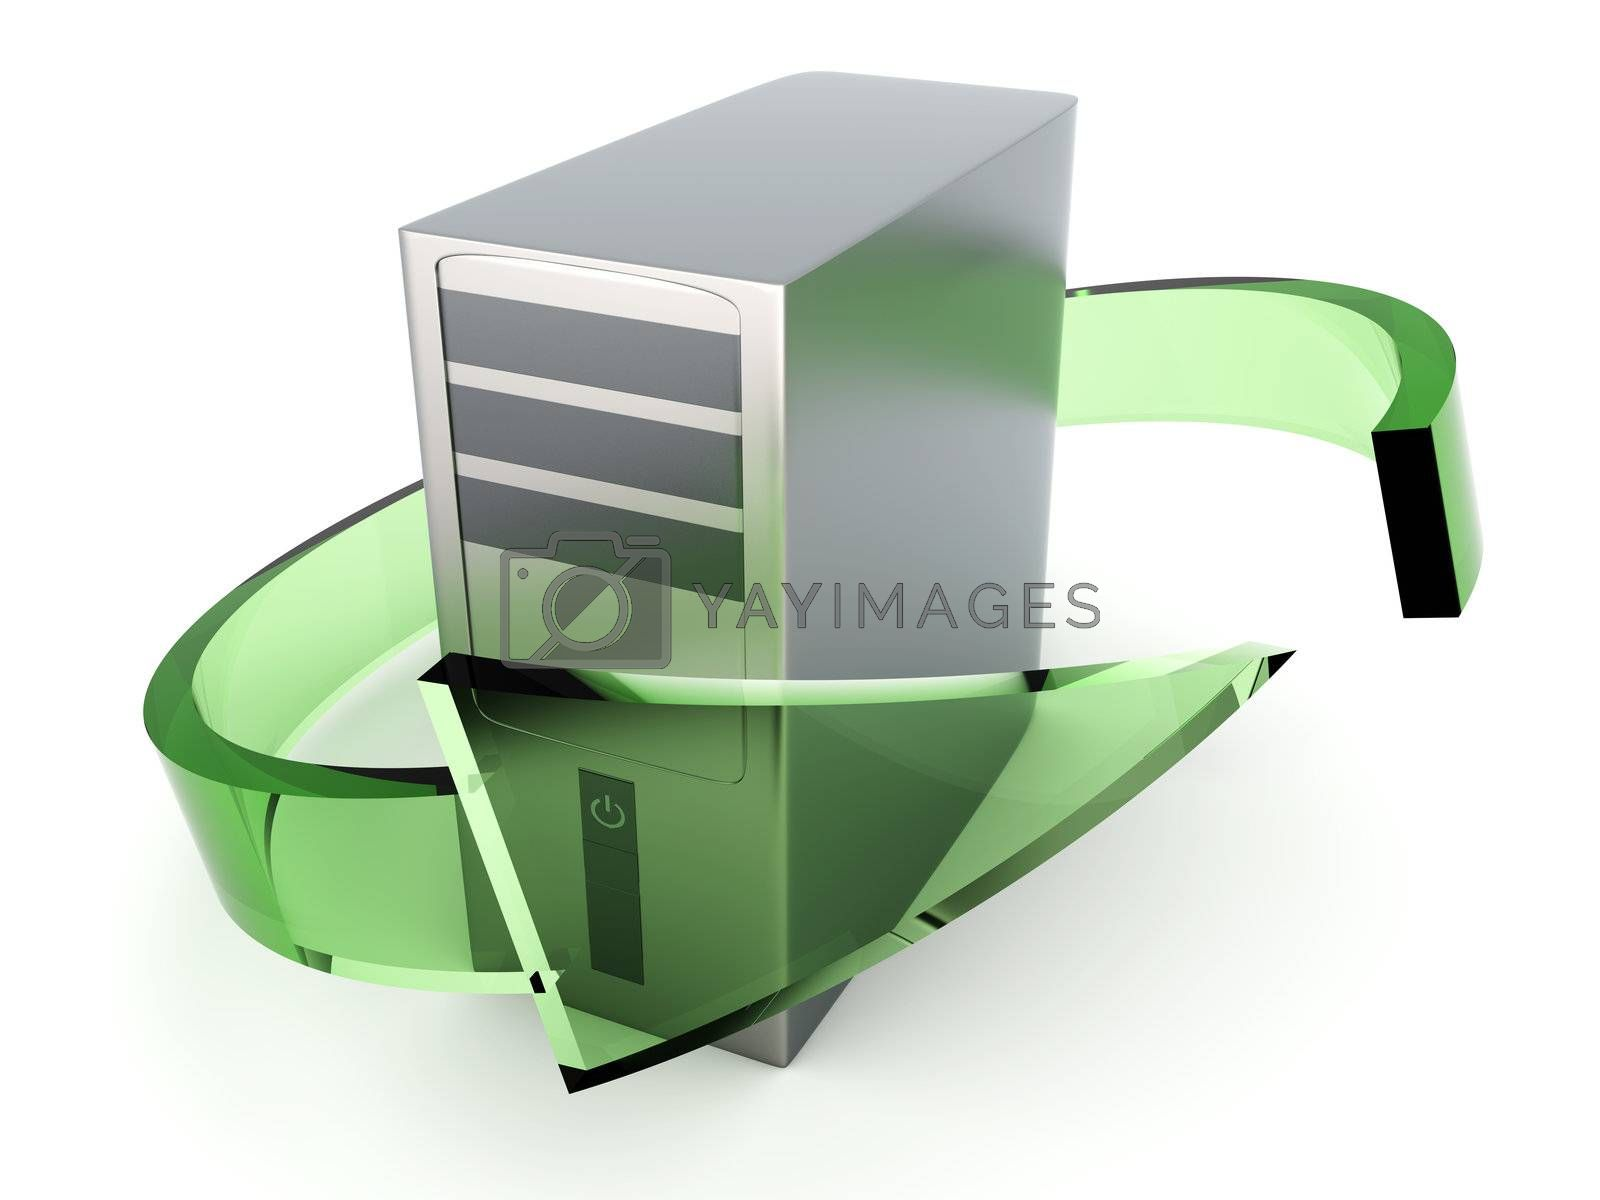 Desktop PC Recycling by Spectral